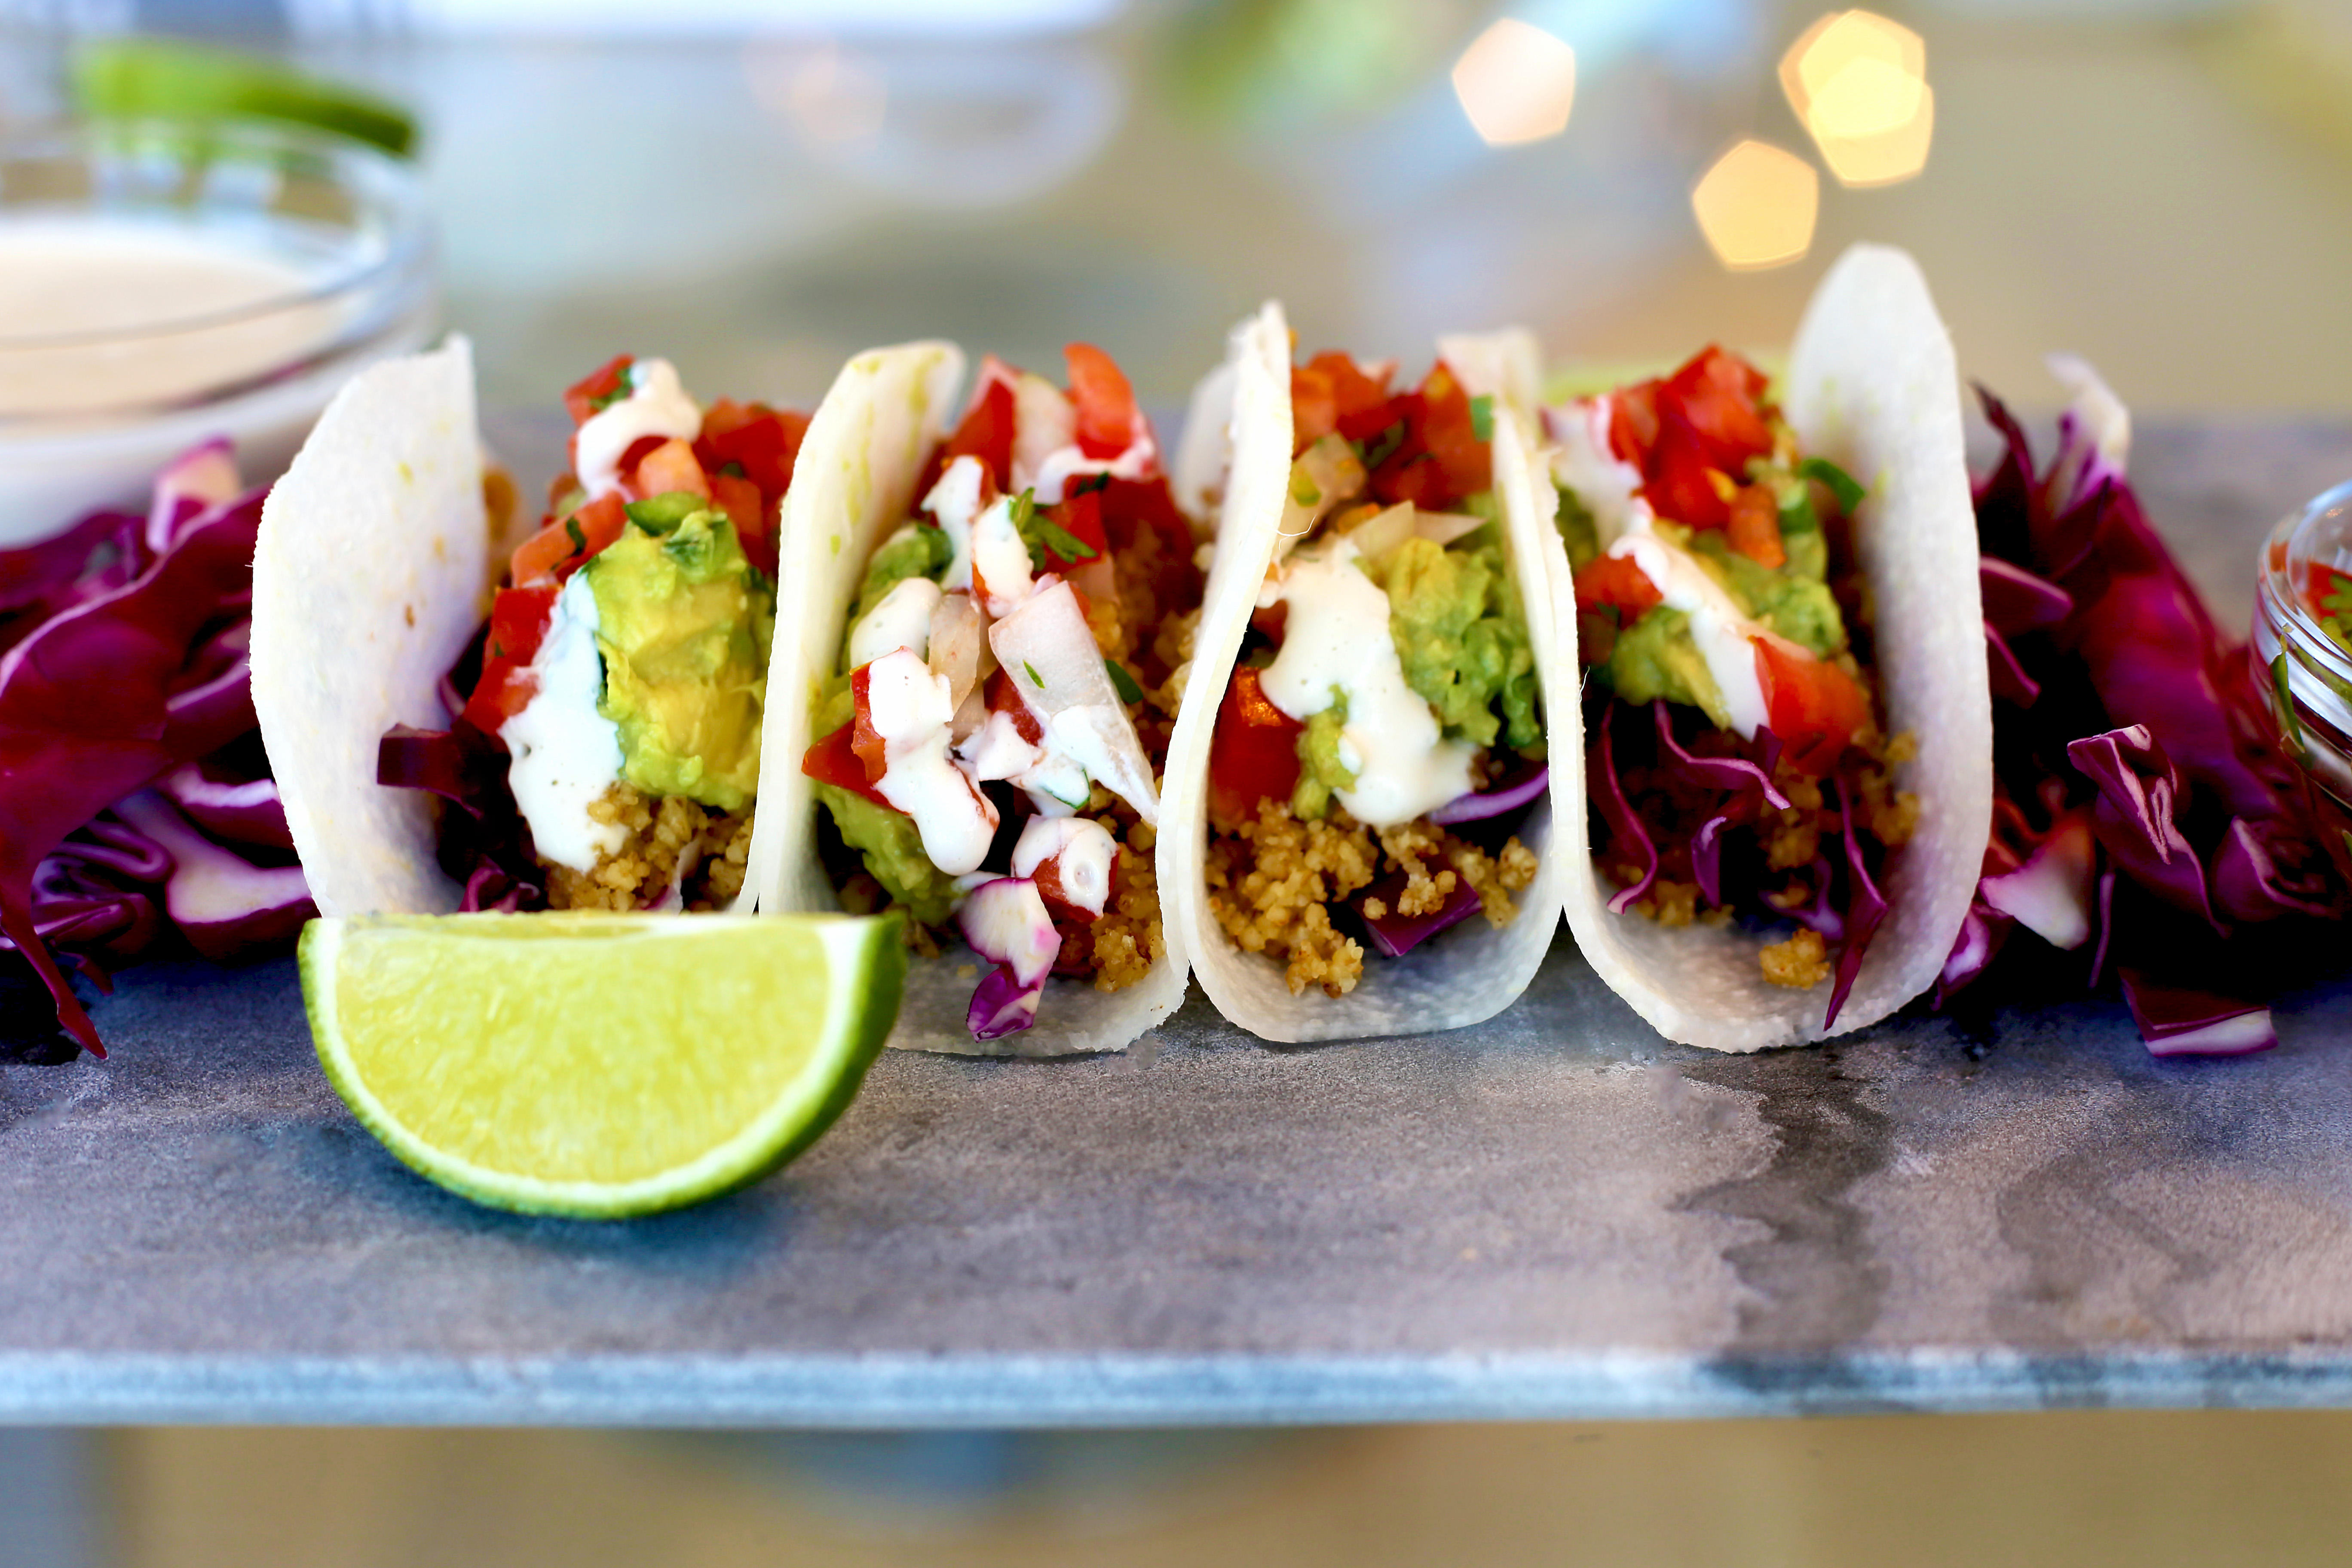 nut-meat-tacos-jicama-shells-4